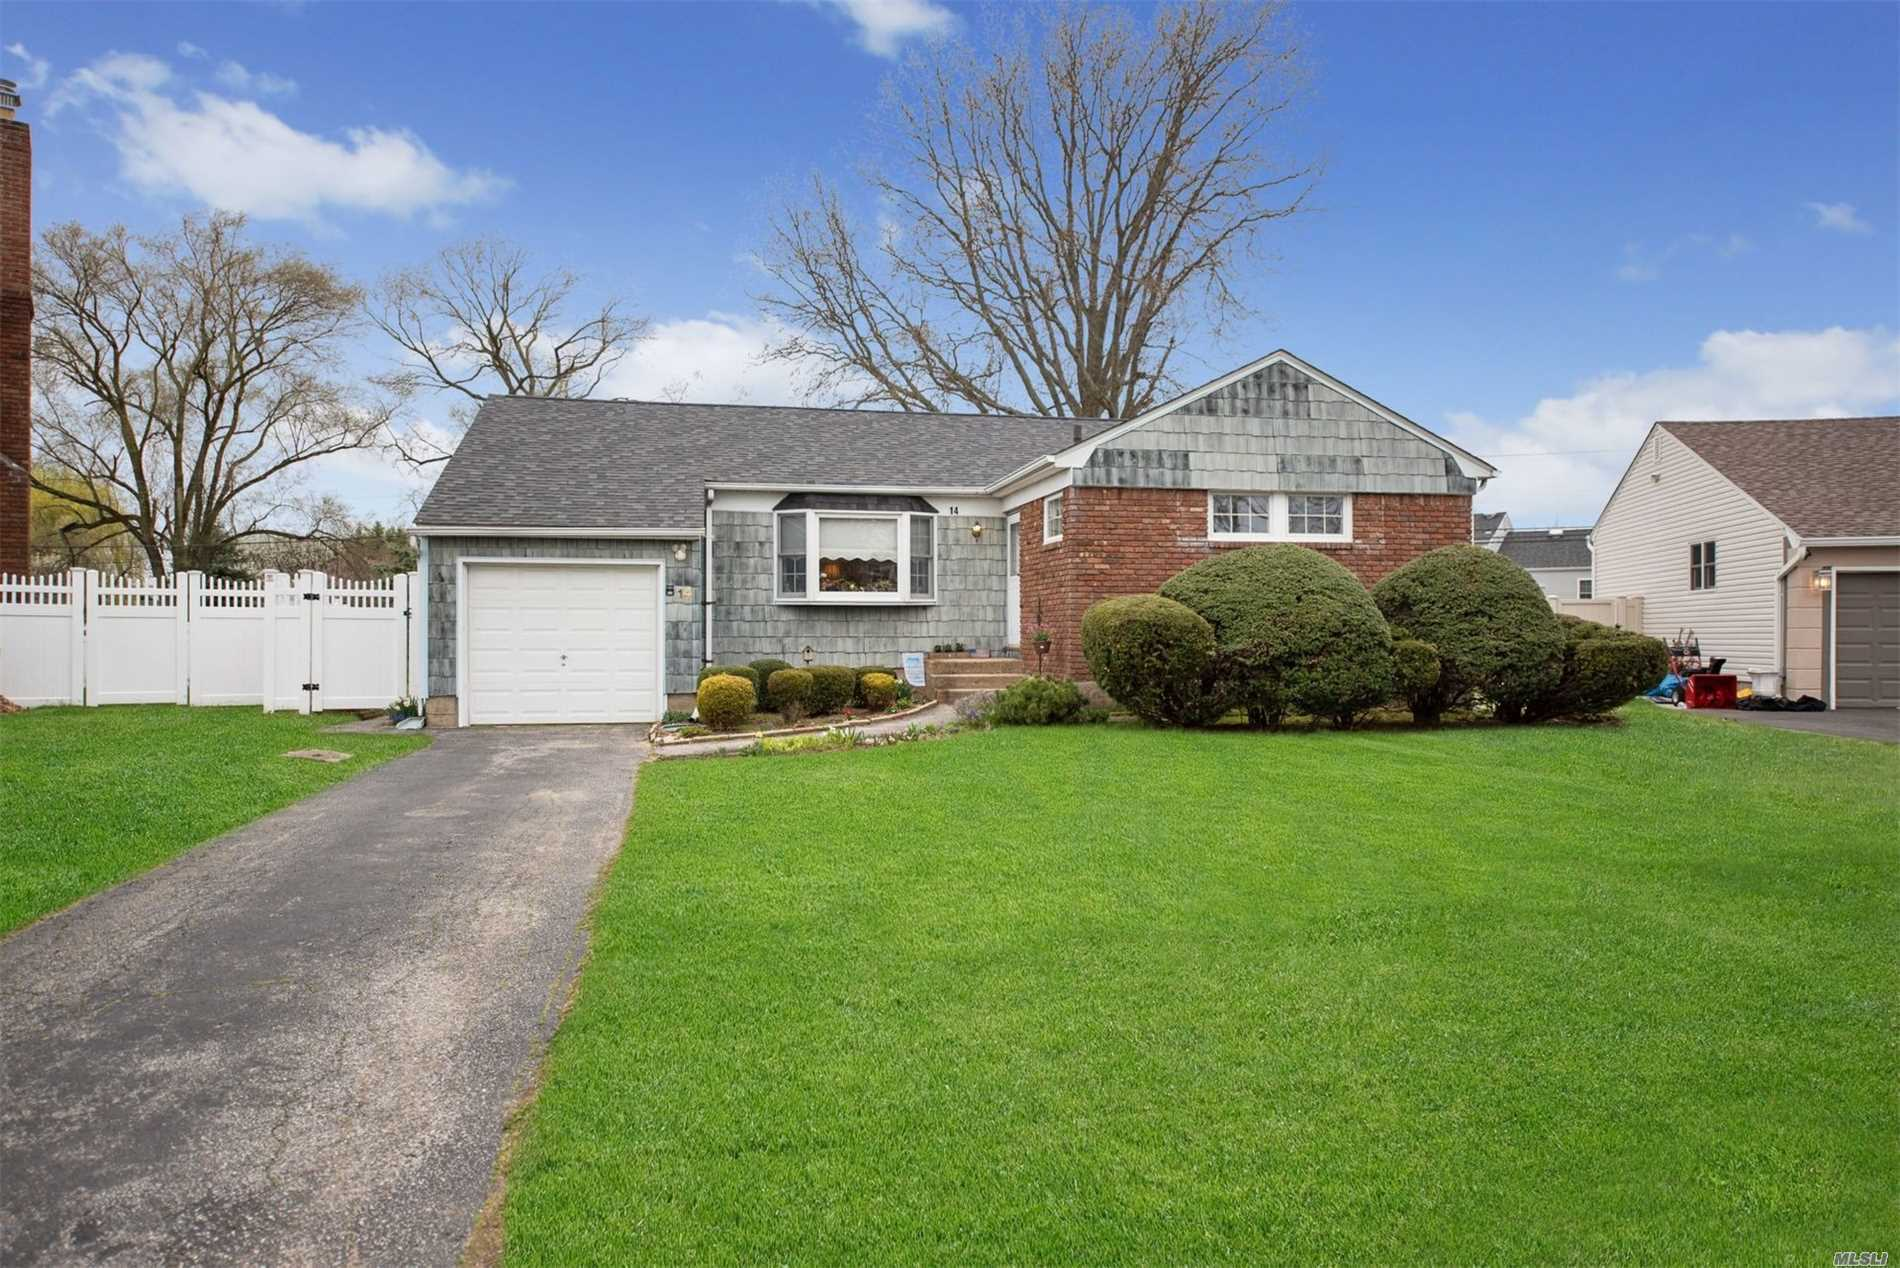 Sprawling Ranch w/1214 Sq. Feet of Living Space on 1st Floor. Updated Eat In Kitchen w/Granite Countertops. Large Dining Room. Master Bedroom w/Half Bathroom. Huge Finished Basement. Gorgeous Hardwood Floors, Central Air, Architect Roof, Gas Heating & Cooking. Large Yard for Entertaining. Close to Parks, Shopping & Parkway. A Must See Home!